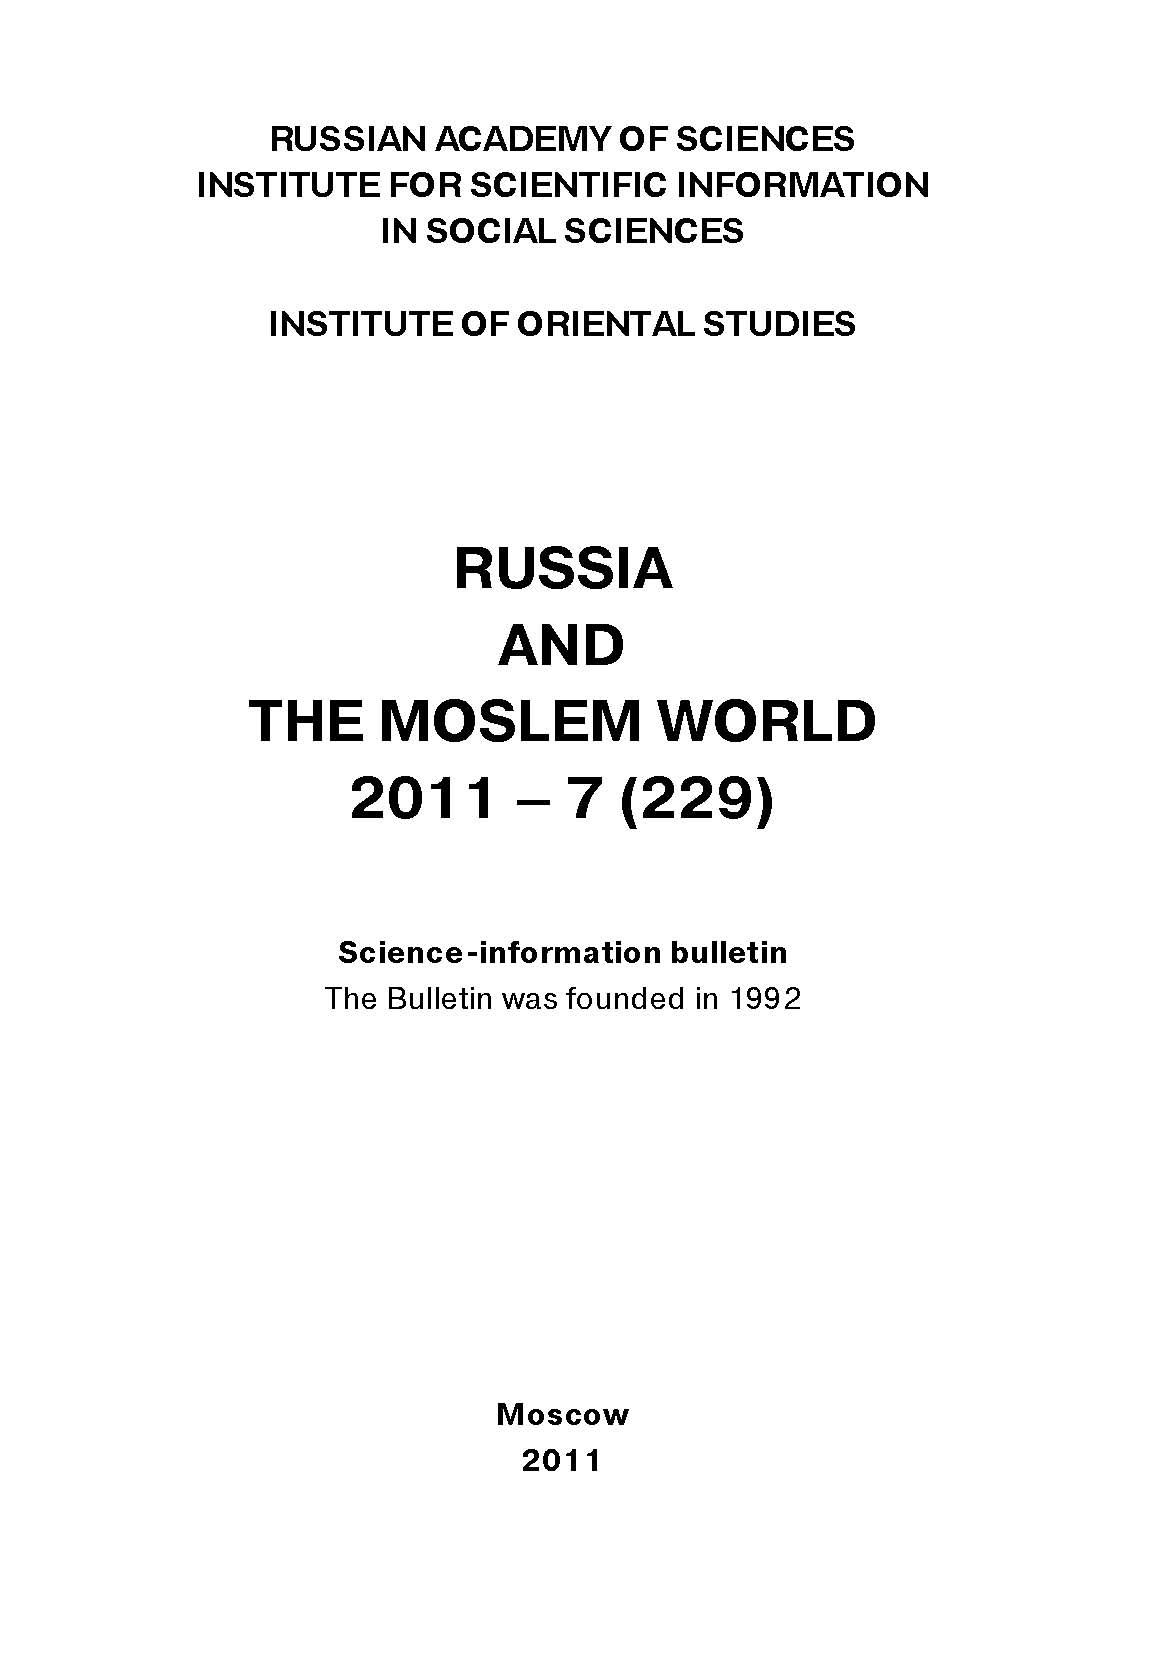 Сборник статей Russia and the Moslem World № 07 / 2011 сборник статей russia and the moslem world 04 2011